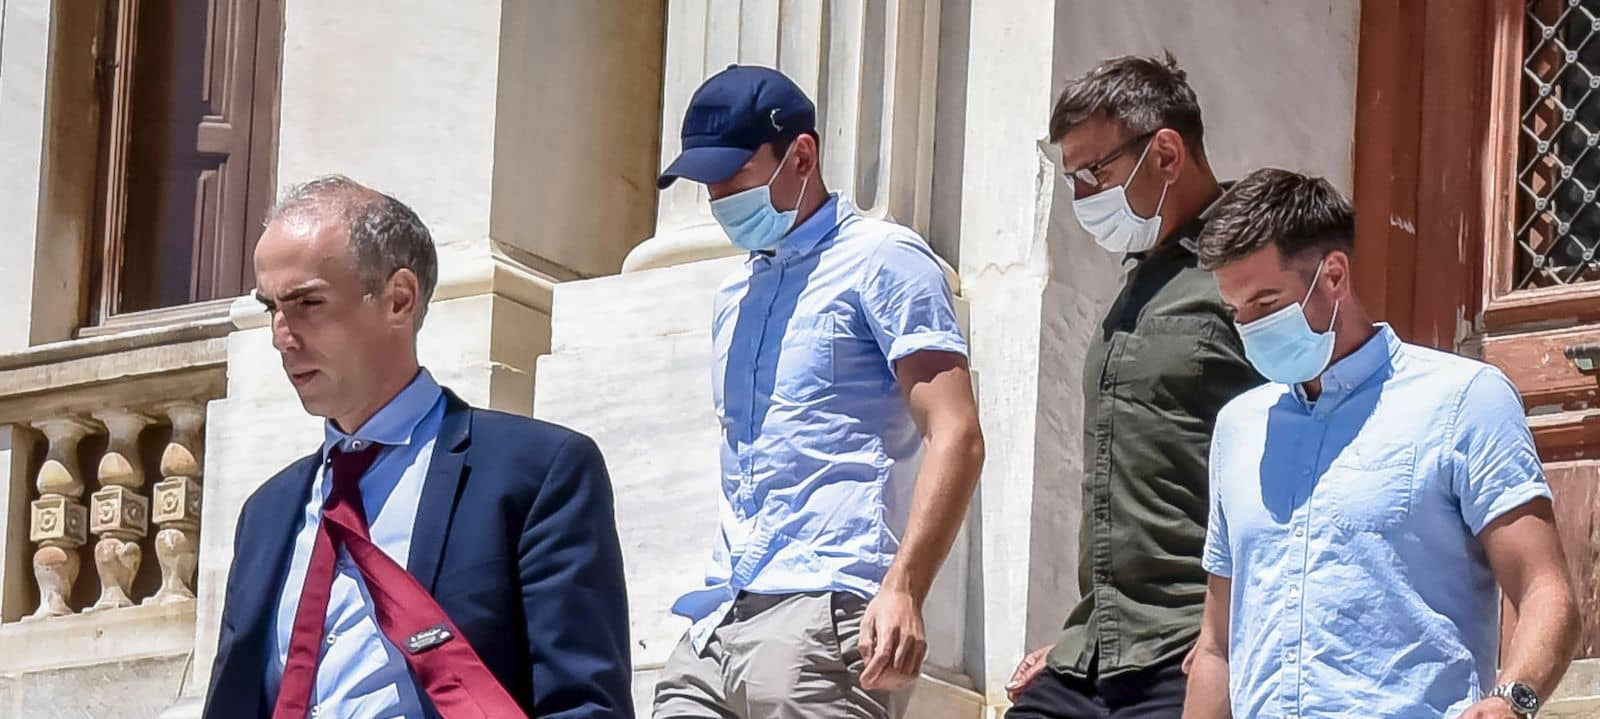 Harry Maguire out on bail but could face three-year prison term